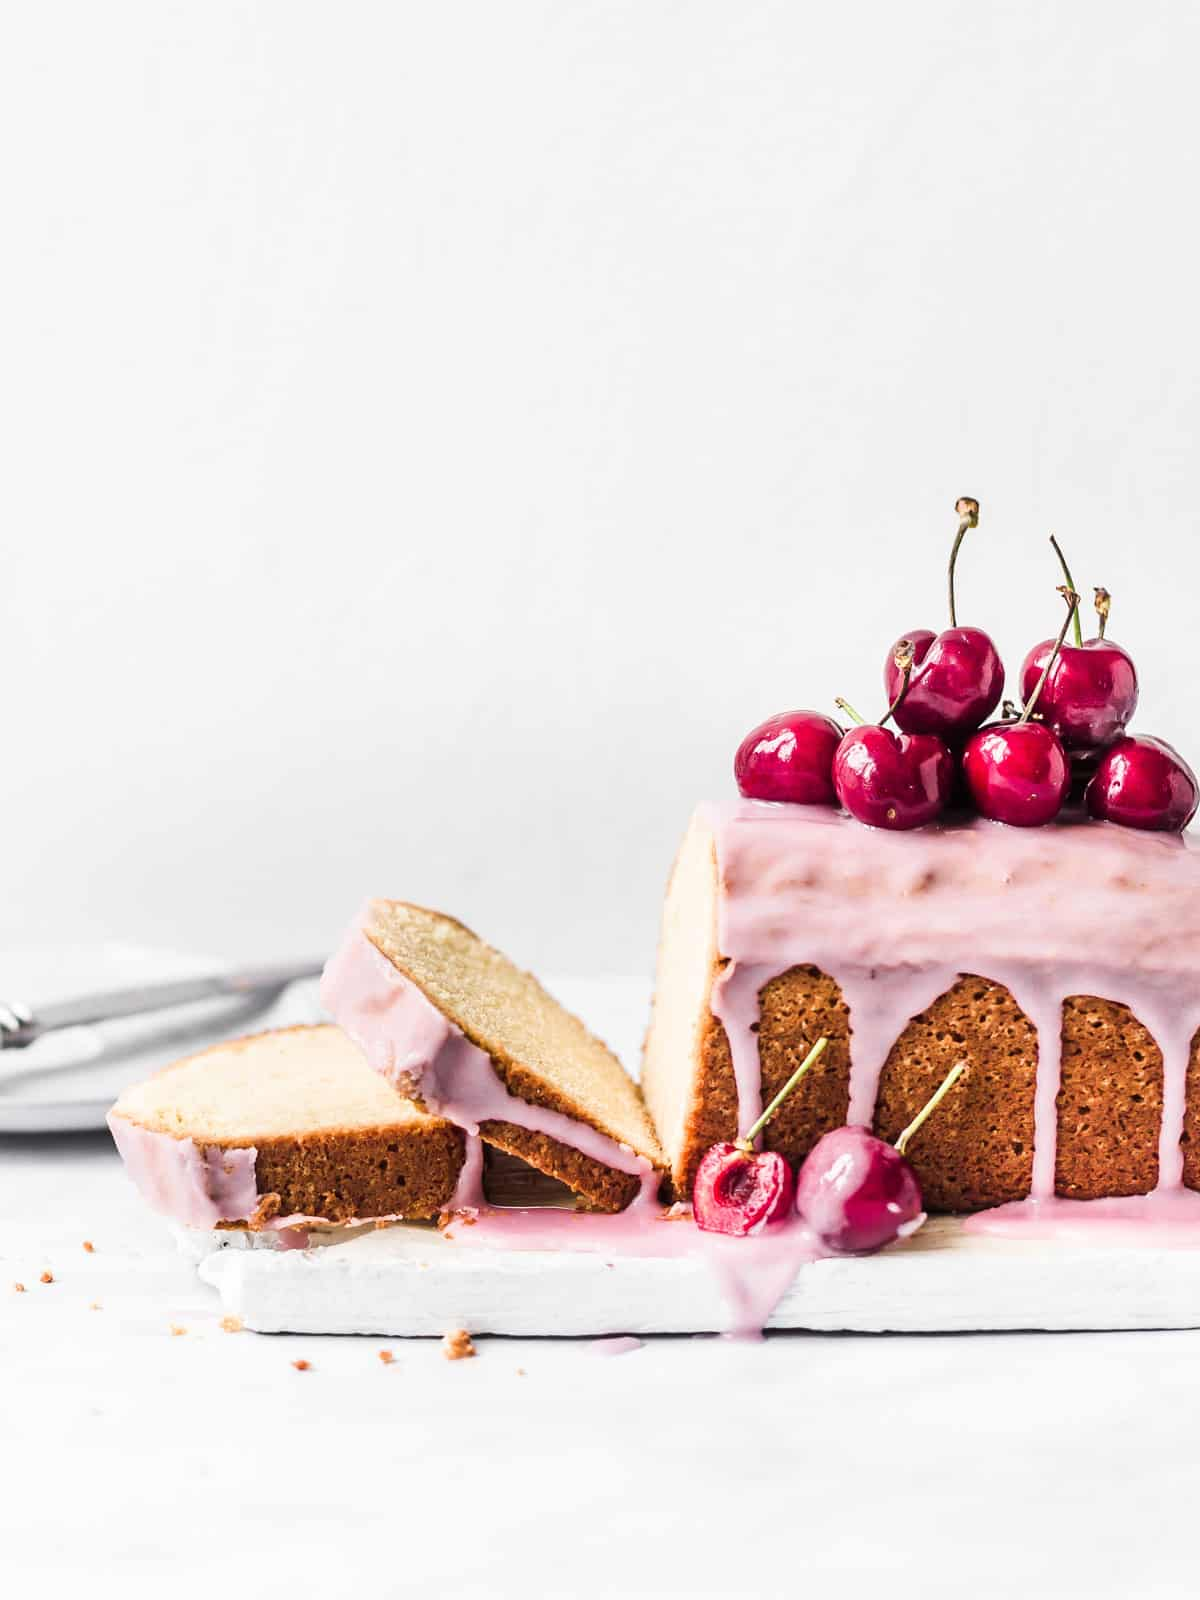 Orange Blossom Cake decorated with pink icing and fresh cherries